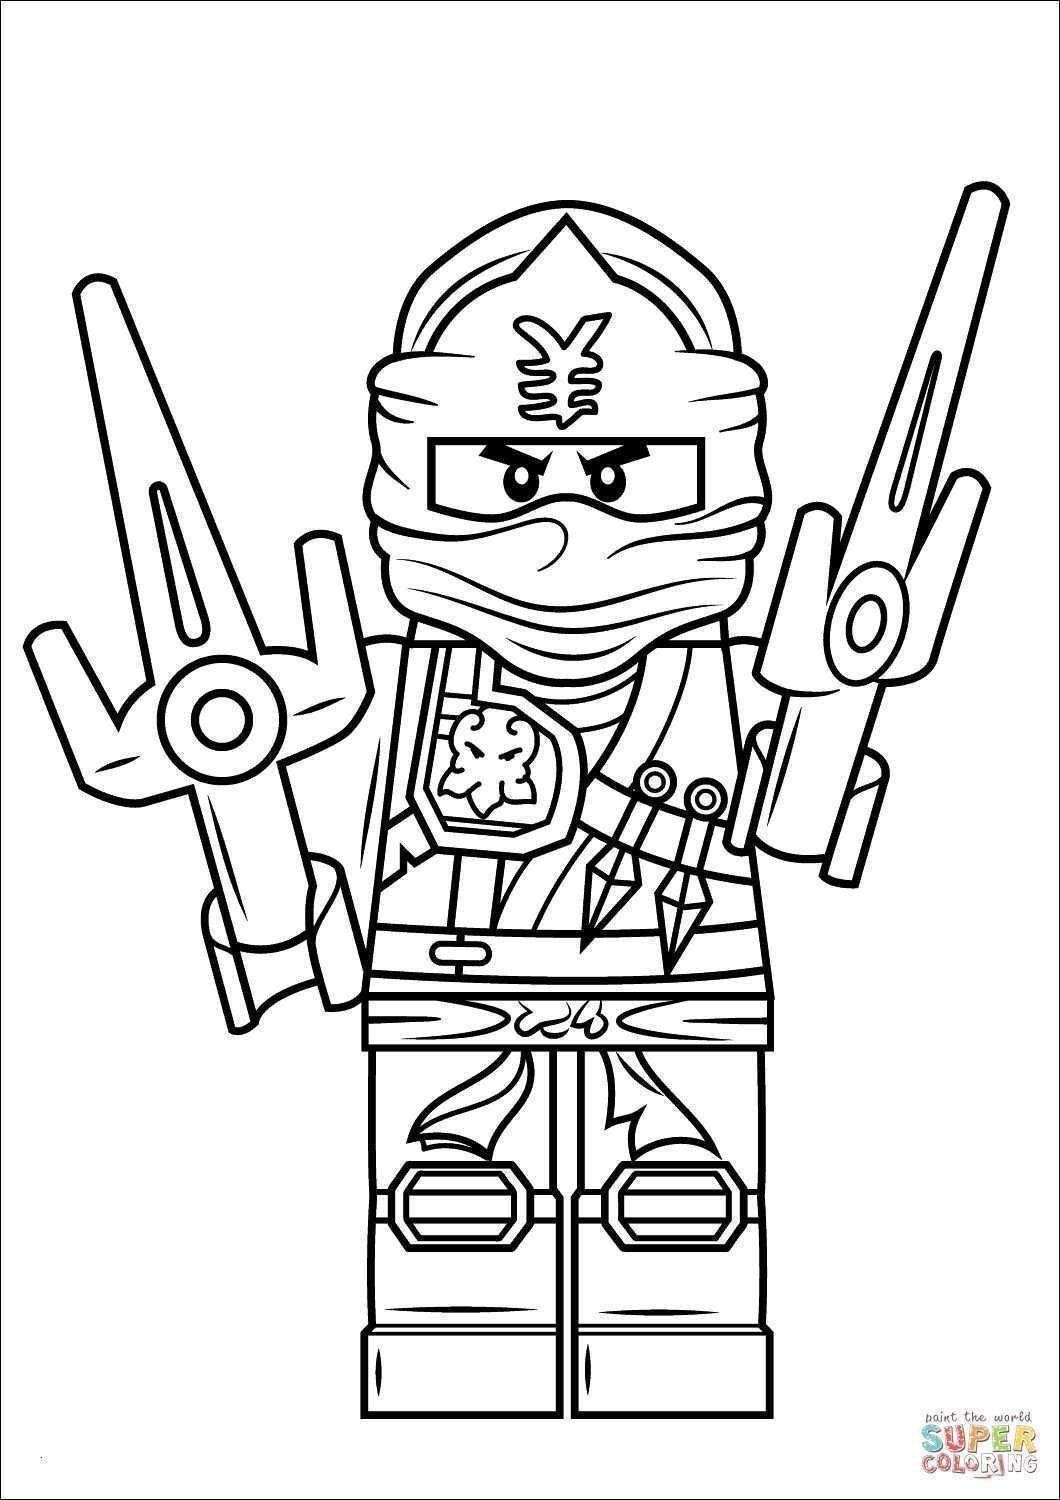 Lego Ninjago Coloring Pages Lovely Ausmalbilder Ninjago Jay Mindbending Coloring Pages Lego Ninjago Fo Ninjago Coloring Pages Lego Coloring Pages Lego Coloring